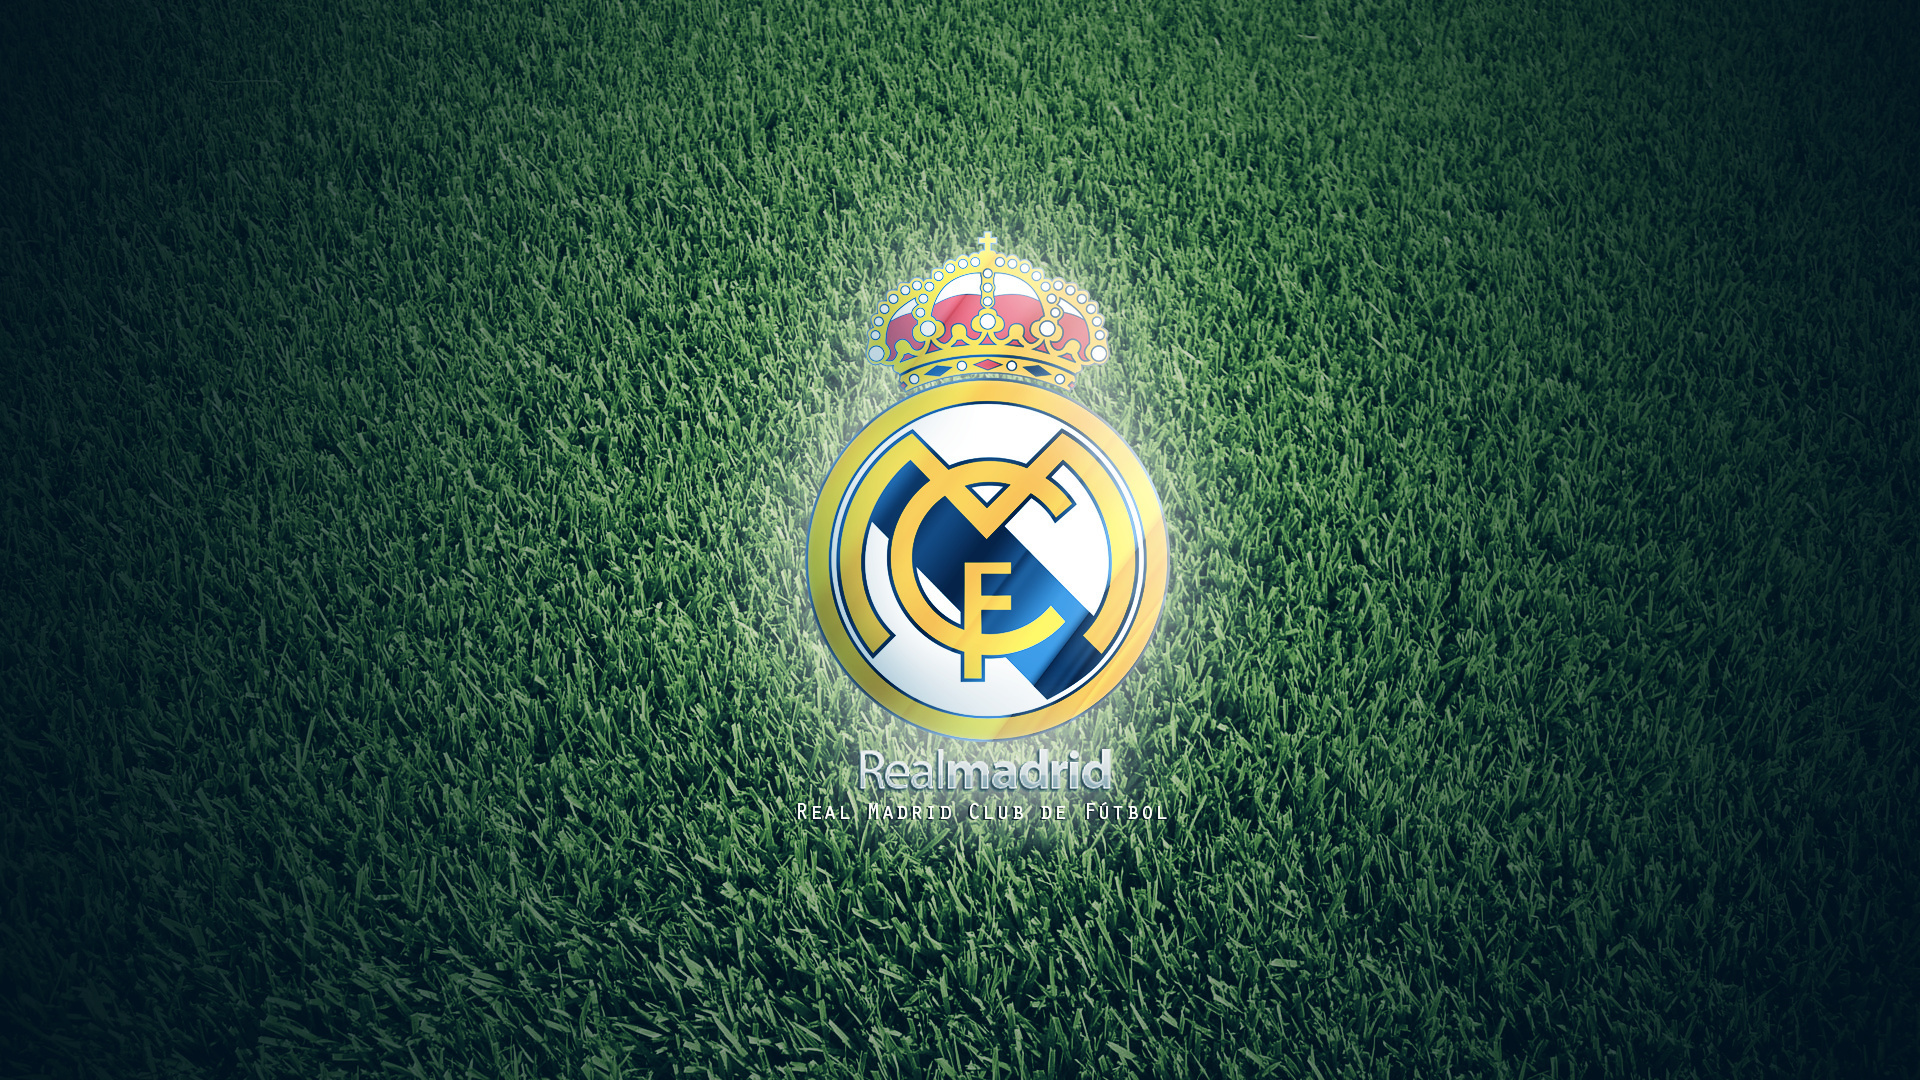 16011 download wallpaper Football, Brands, Background, Logos screensavers and pictures for free